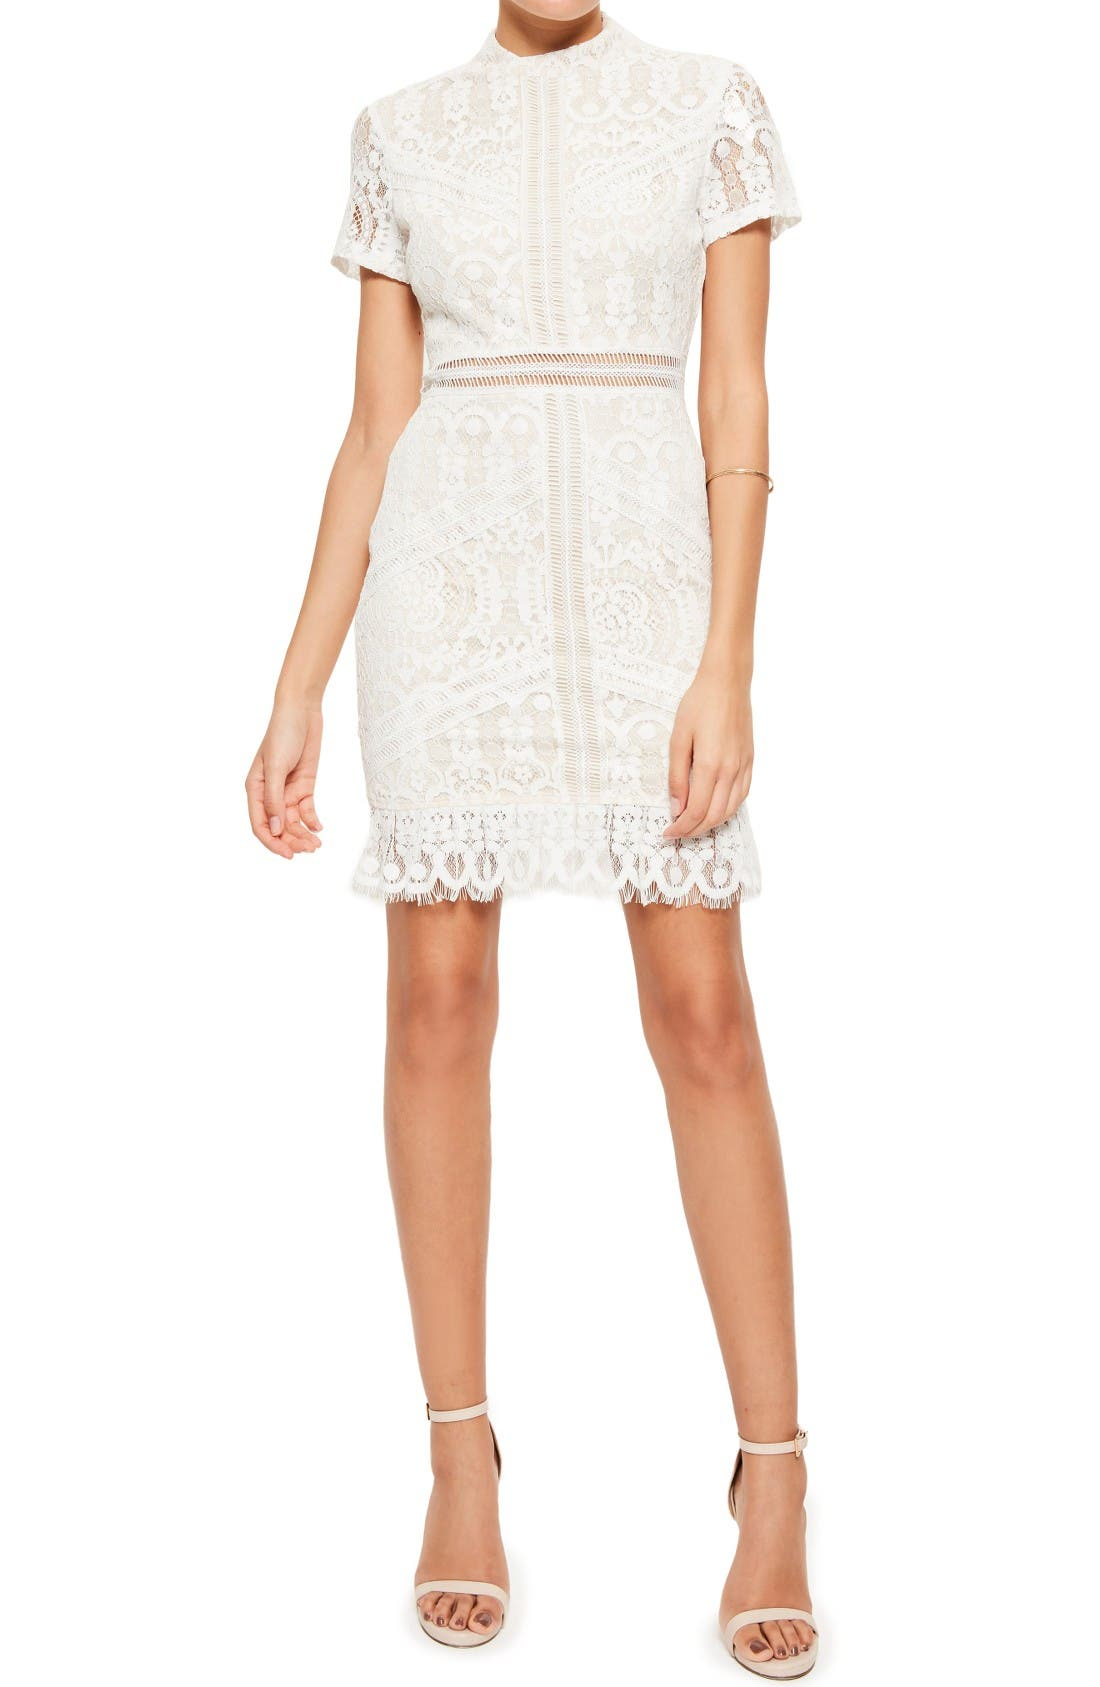 Alternate Image 1 Selected - Missguided Ladder Stitch Lace Dress